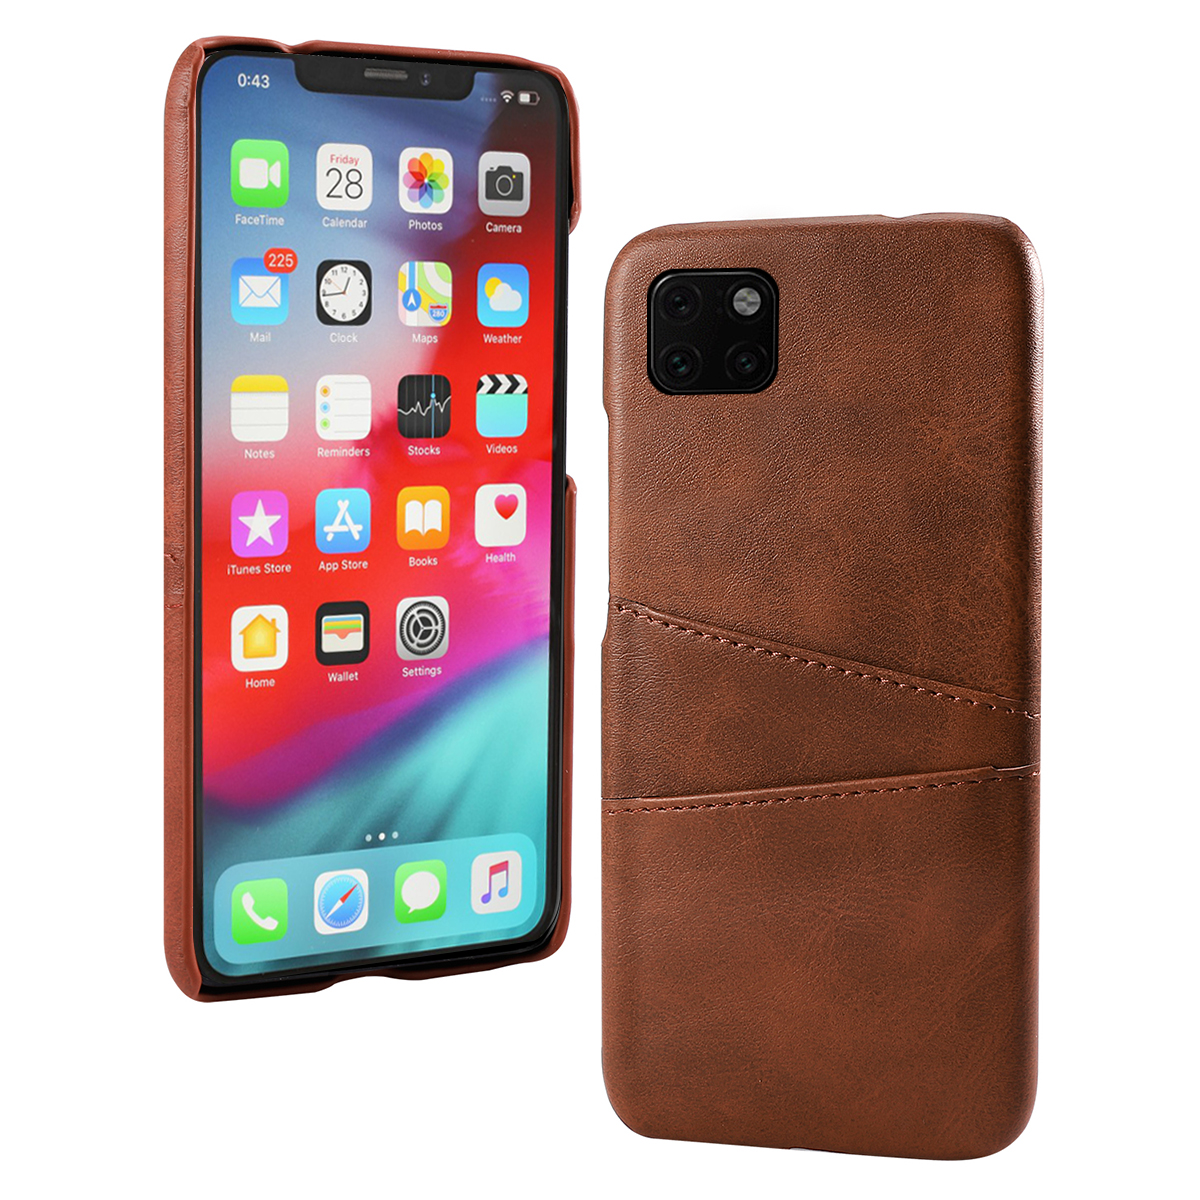 Torubia Leather Card Holder Case for iPhone 11/11 Pro/11 Pro Max 31